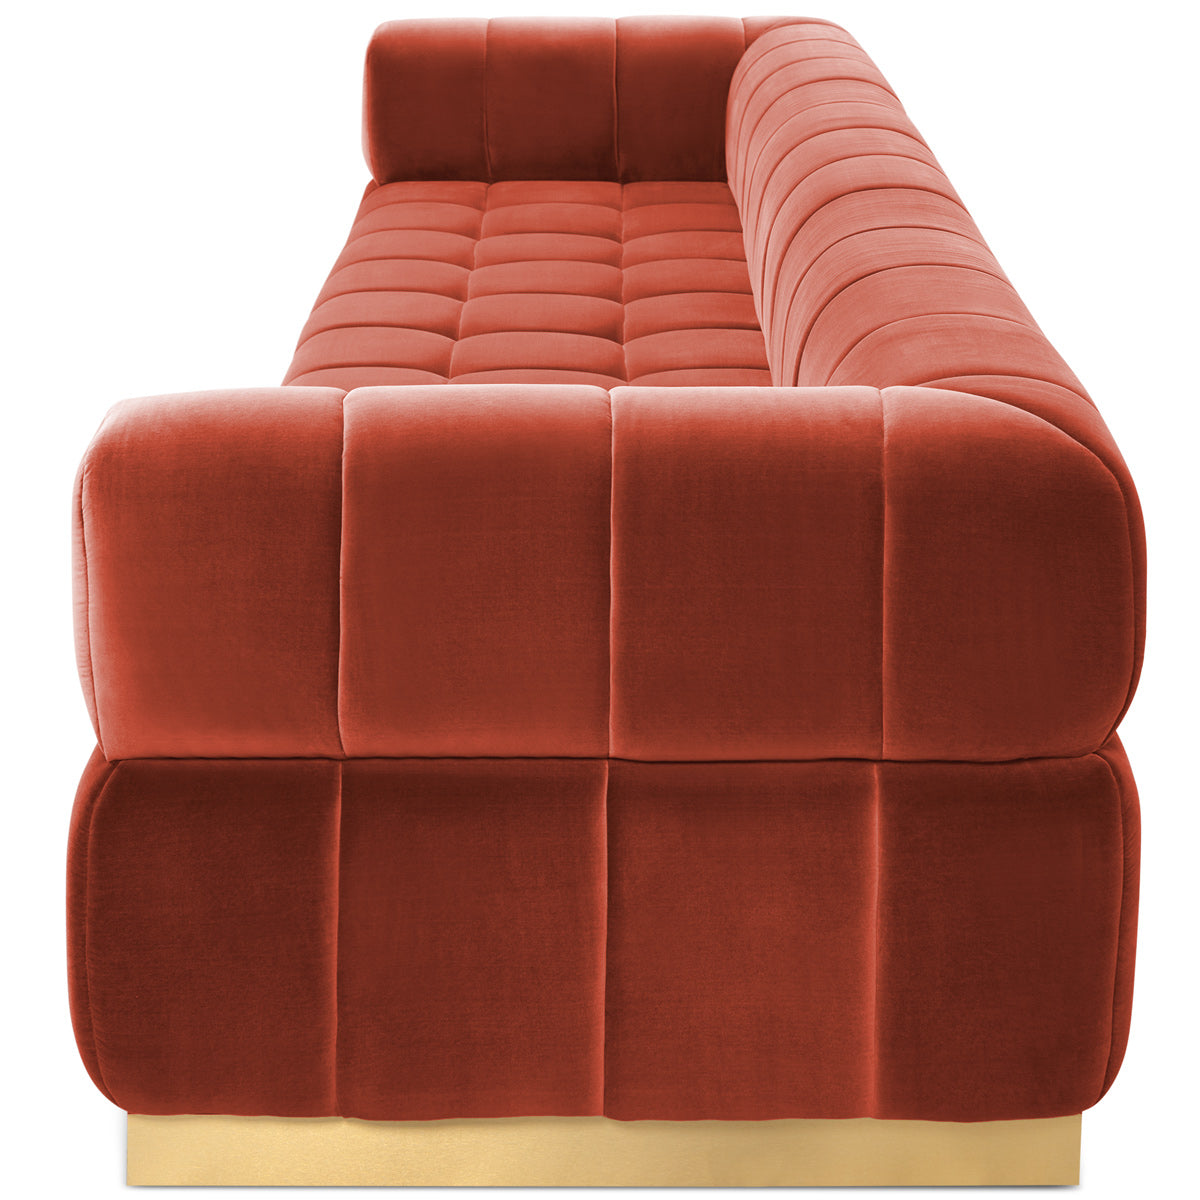 Continental Sofa in Velvet - ModShop1.com